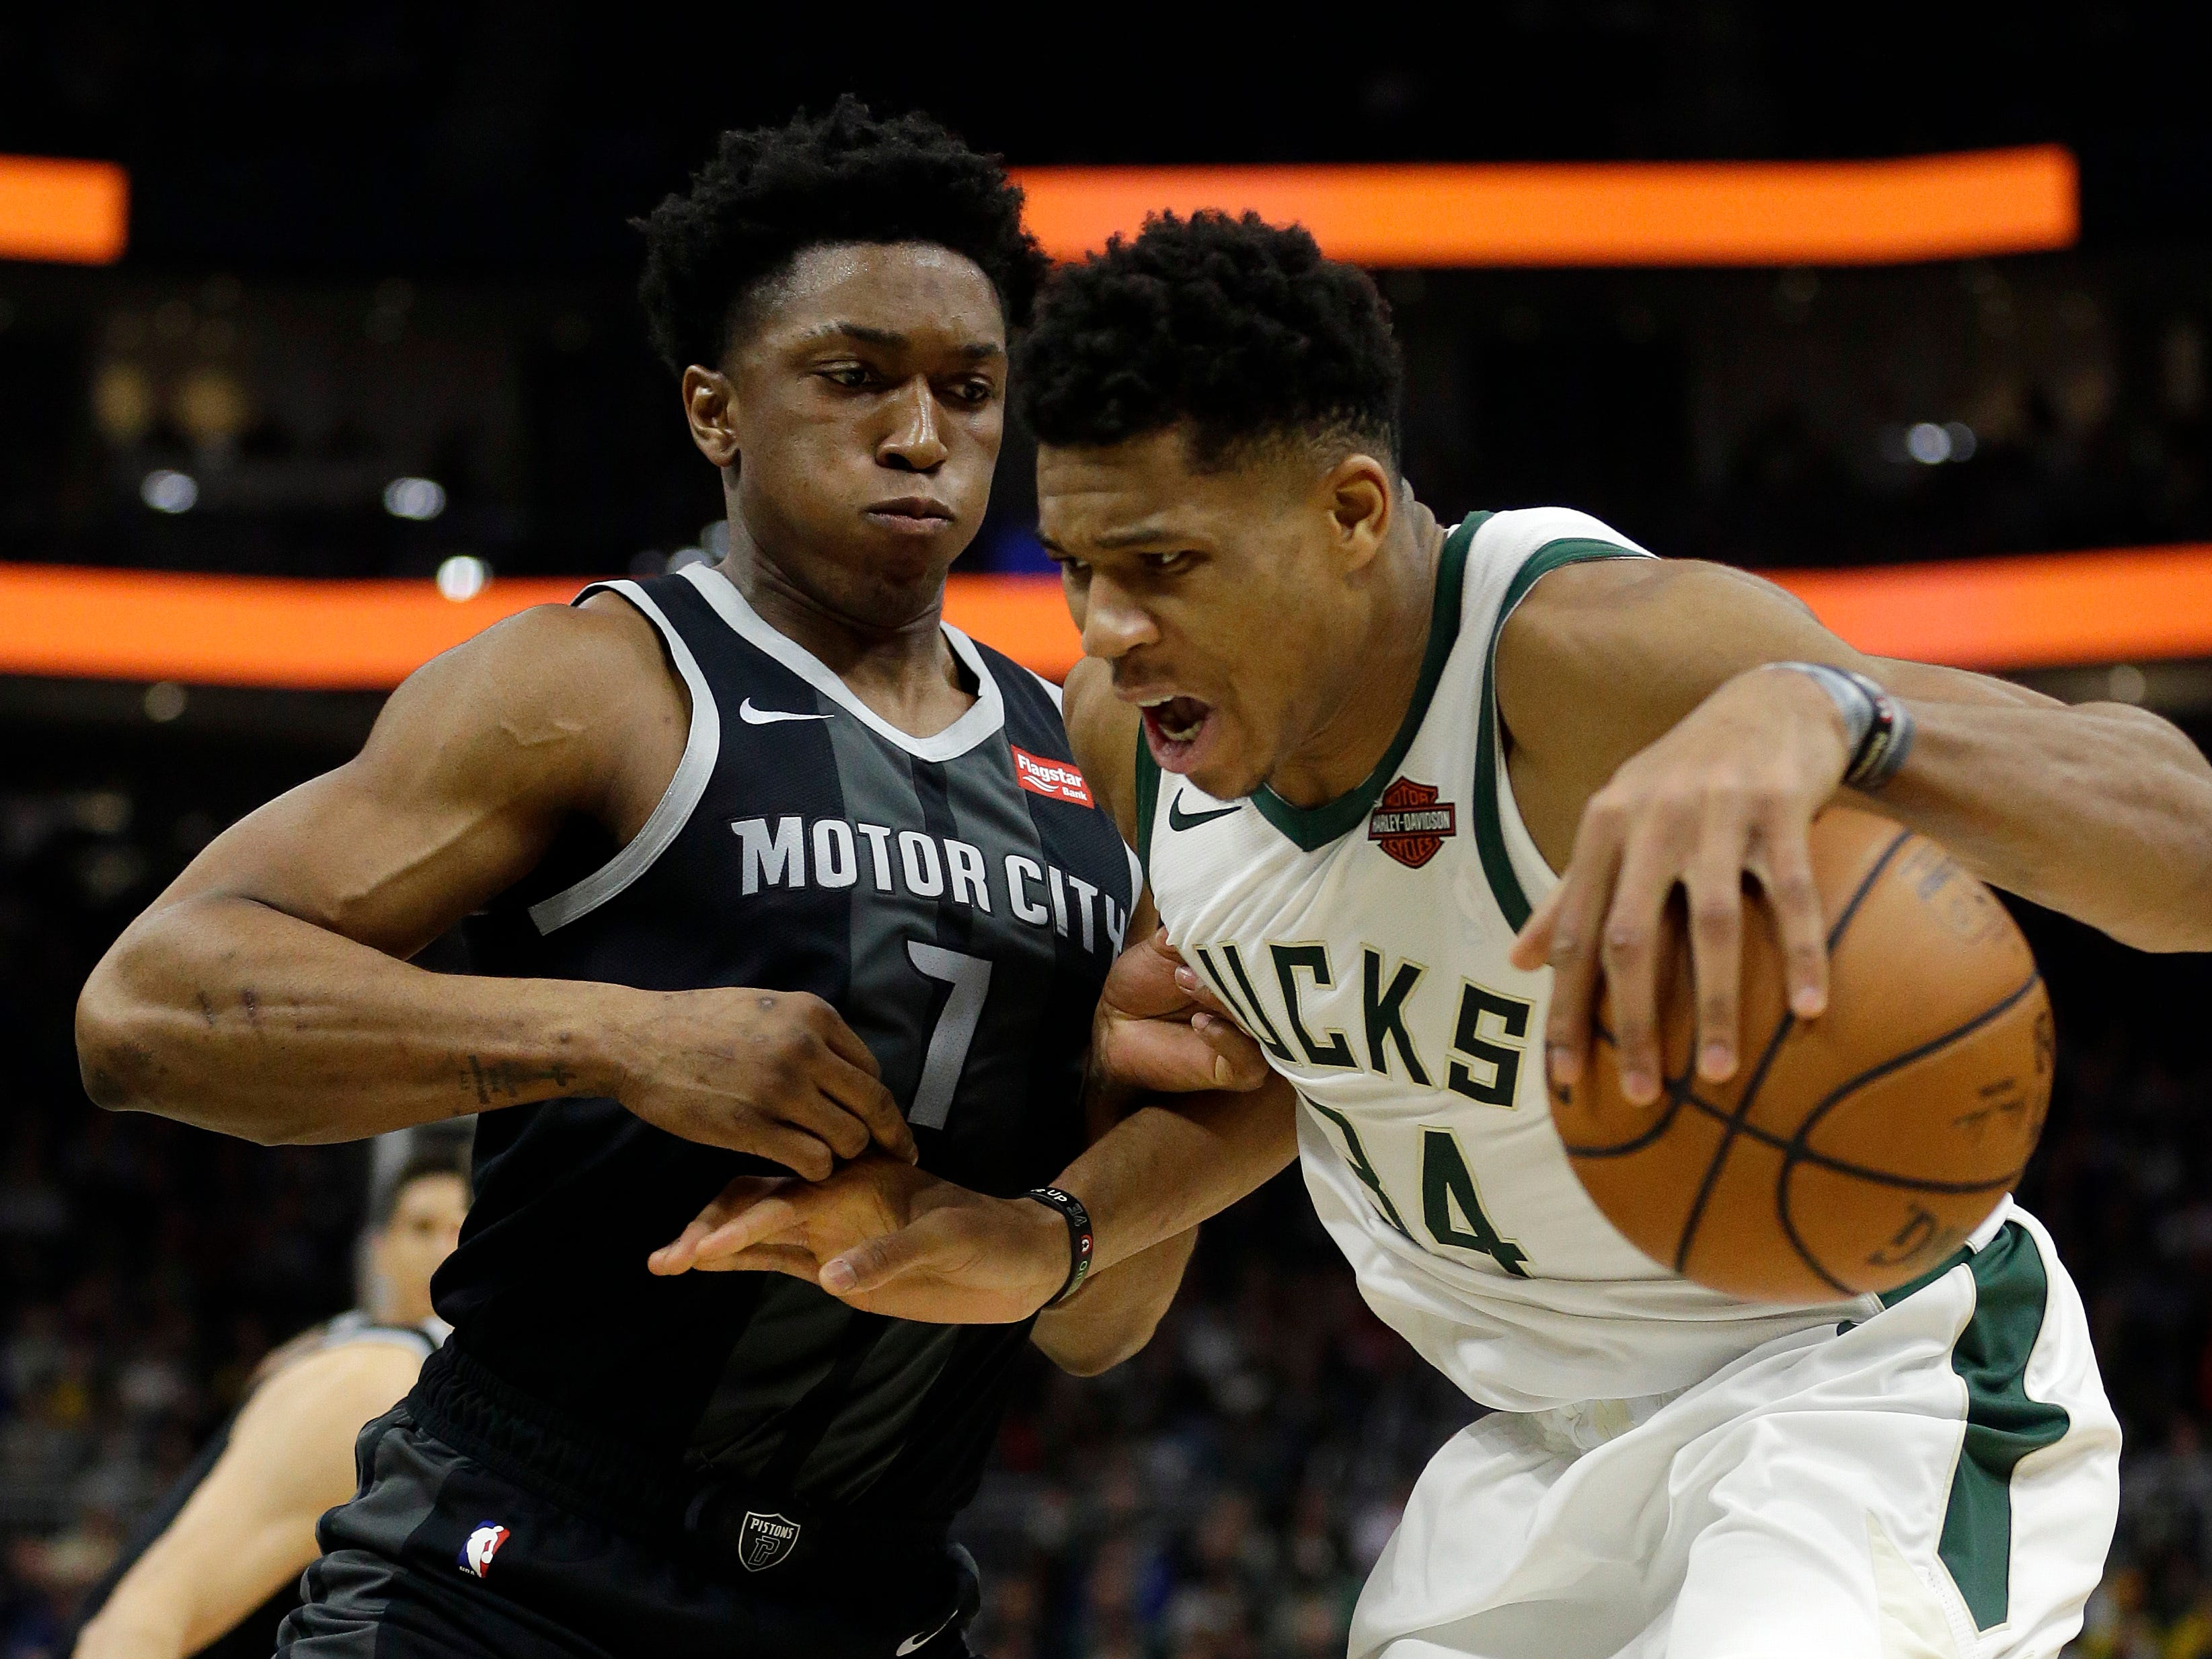 Milwaukee Bucks' Giannis Antetokounmpo drives against Detroit Pistons' Stanley Johnson during the second half Wednesday, Dec. 5, 2018, in Milwaukee.